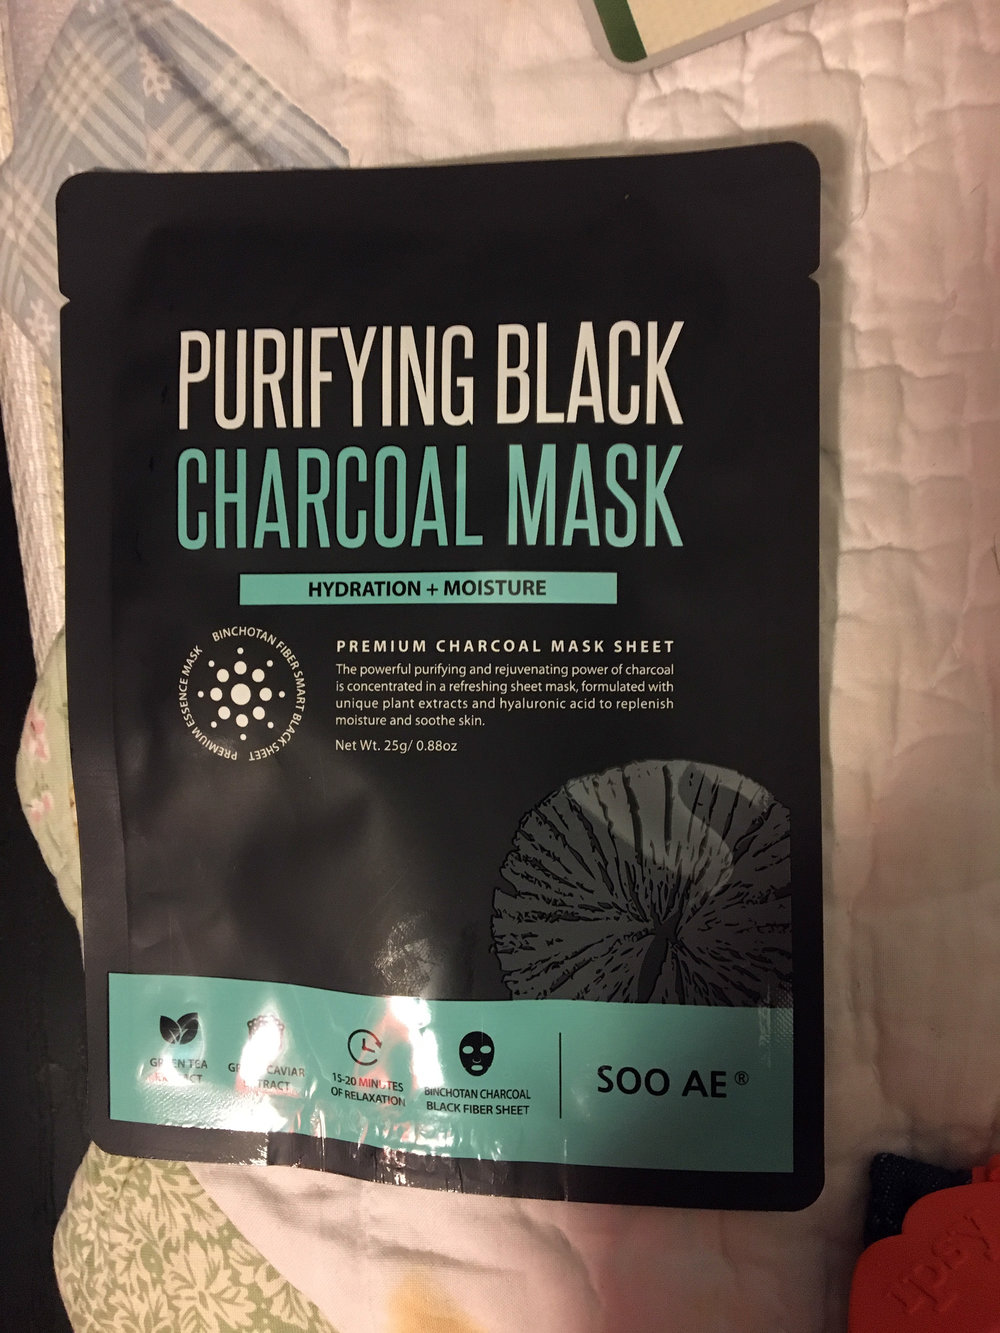 Ipsy-February-Review-Soo-AE-Sheet-Mask-Duo-Purifying-Black-Charcoal-Mask-LINDATENCHITRAN-1-1616x1080.jpg